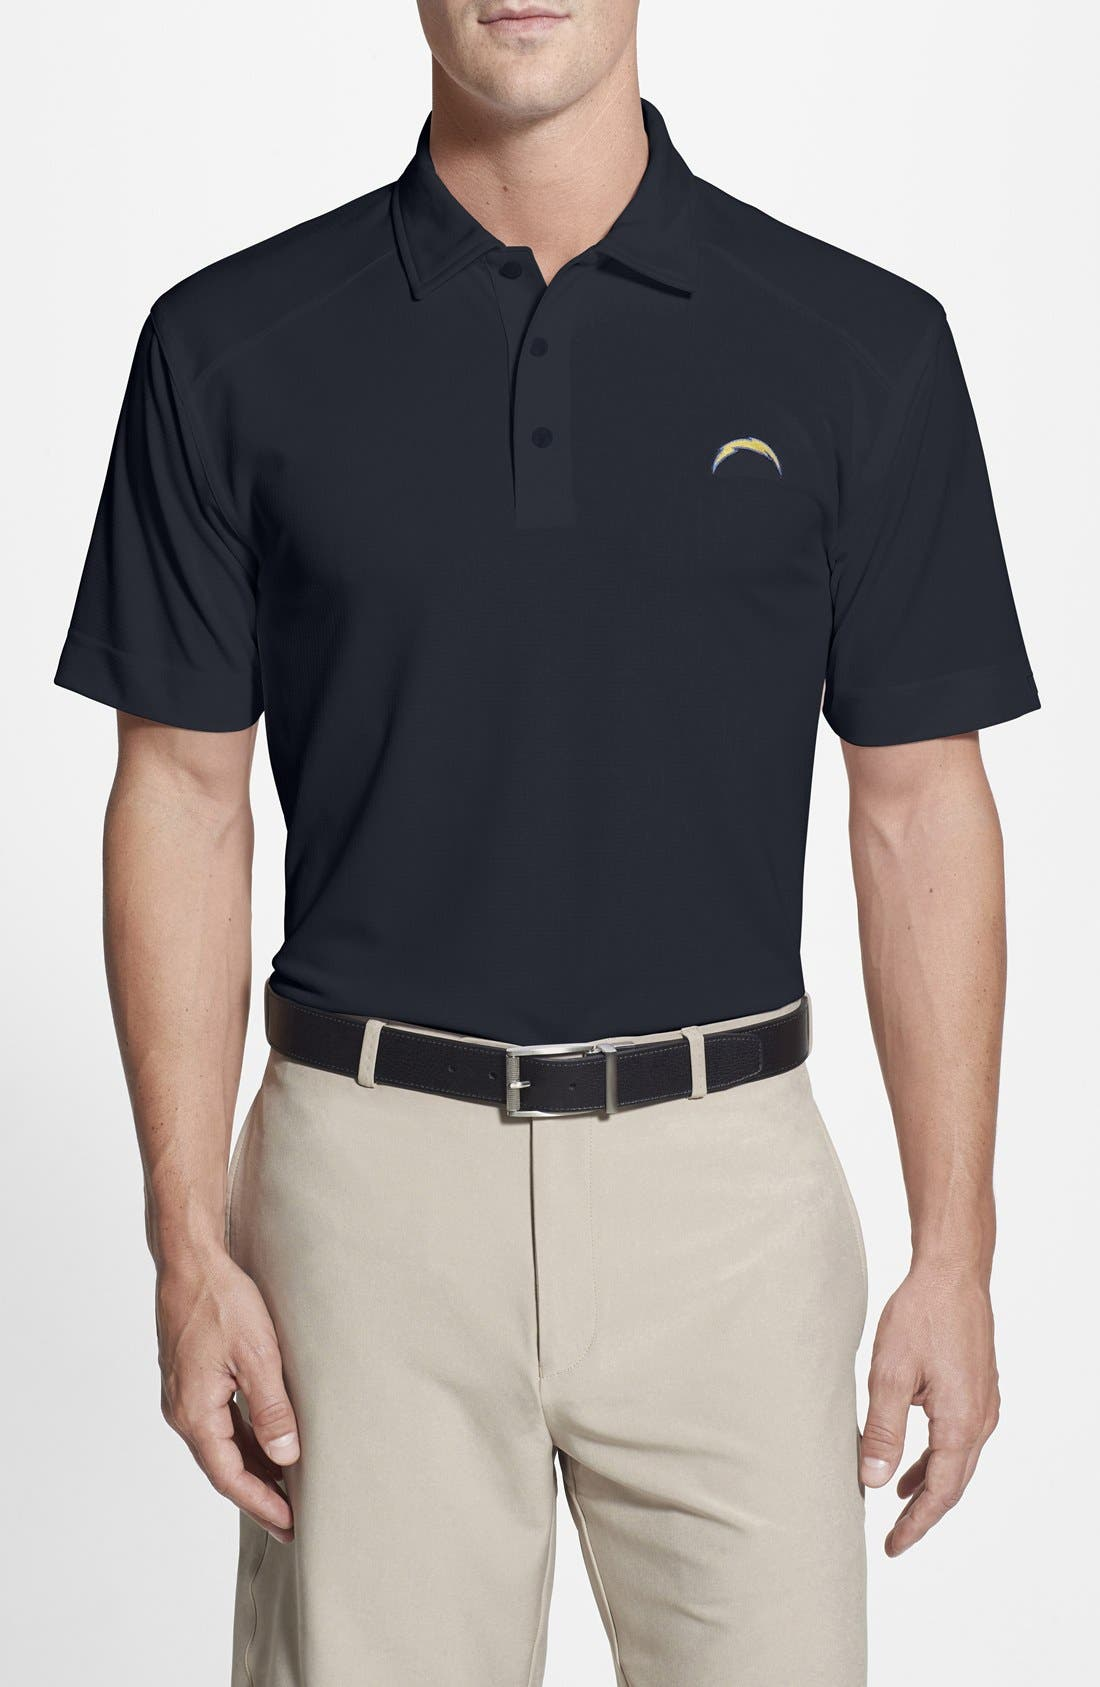 Cutter & Buck San Diego Chargers - Genre DryTec Moisture Wicking Polo